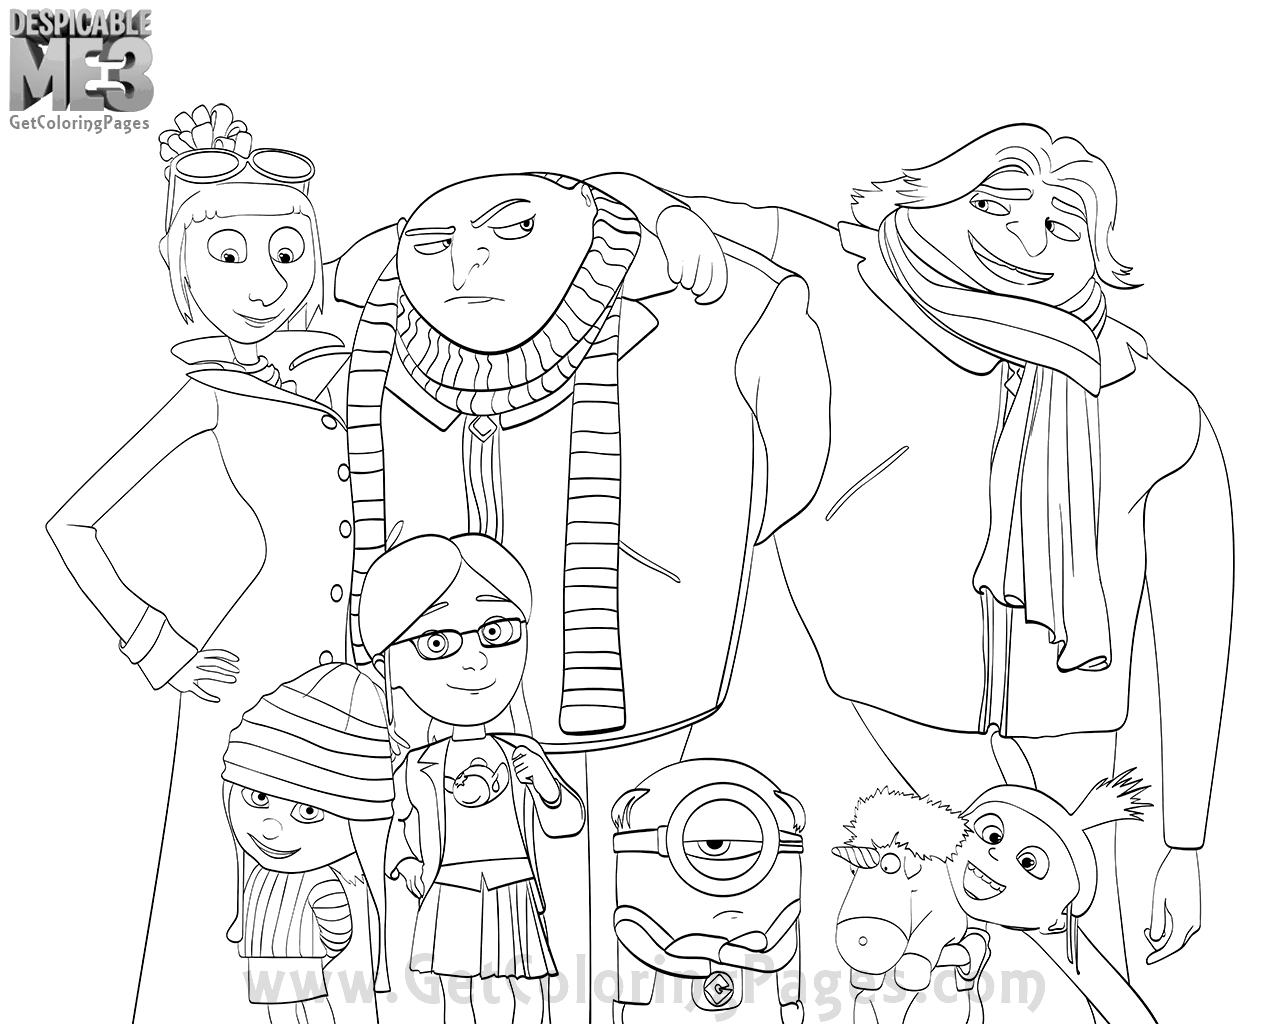 Creative Photo Of Despicable Me 3 Coloring Pages